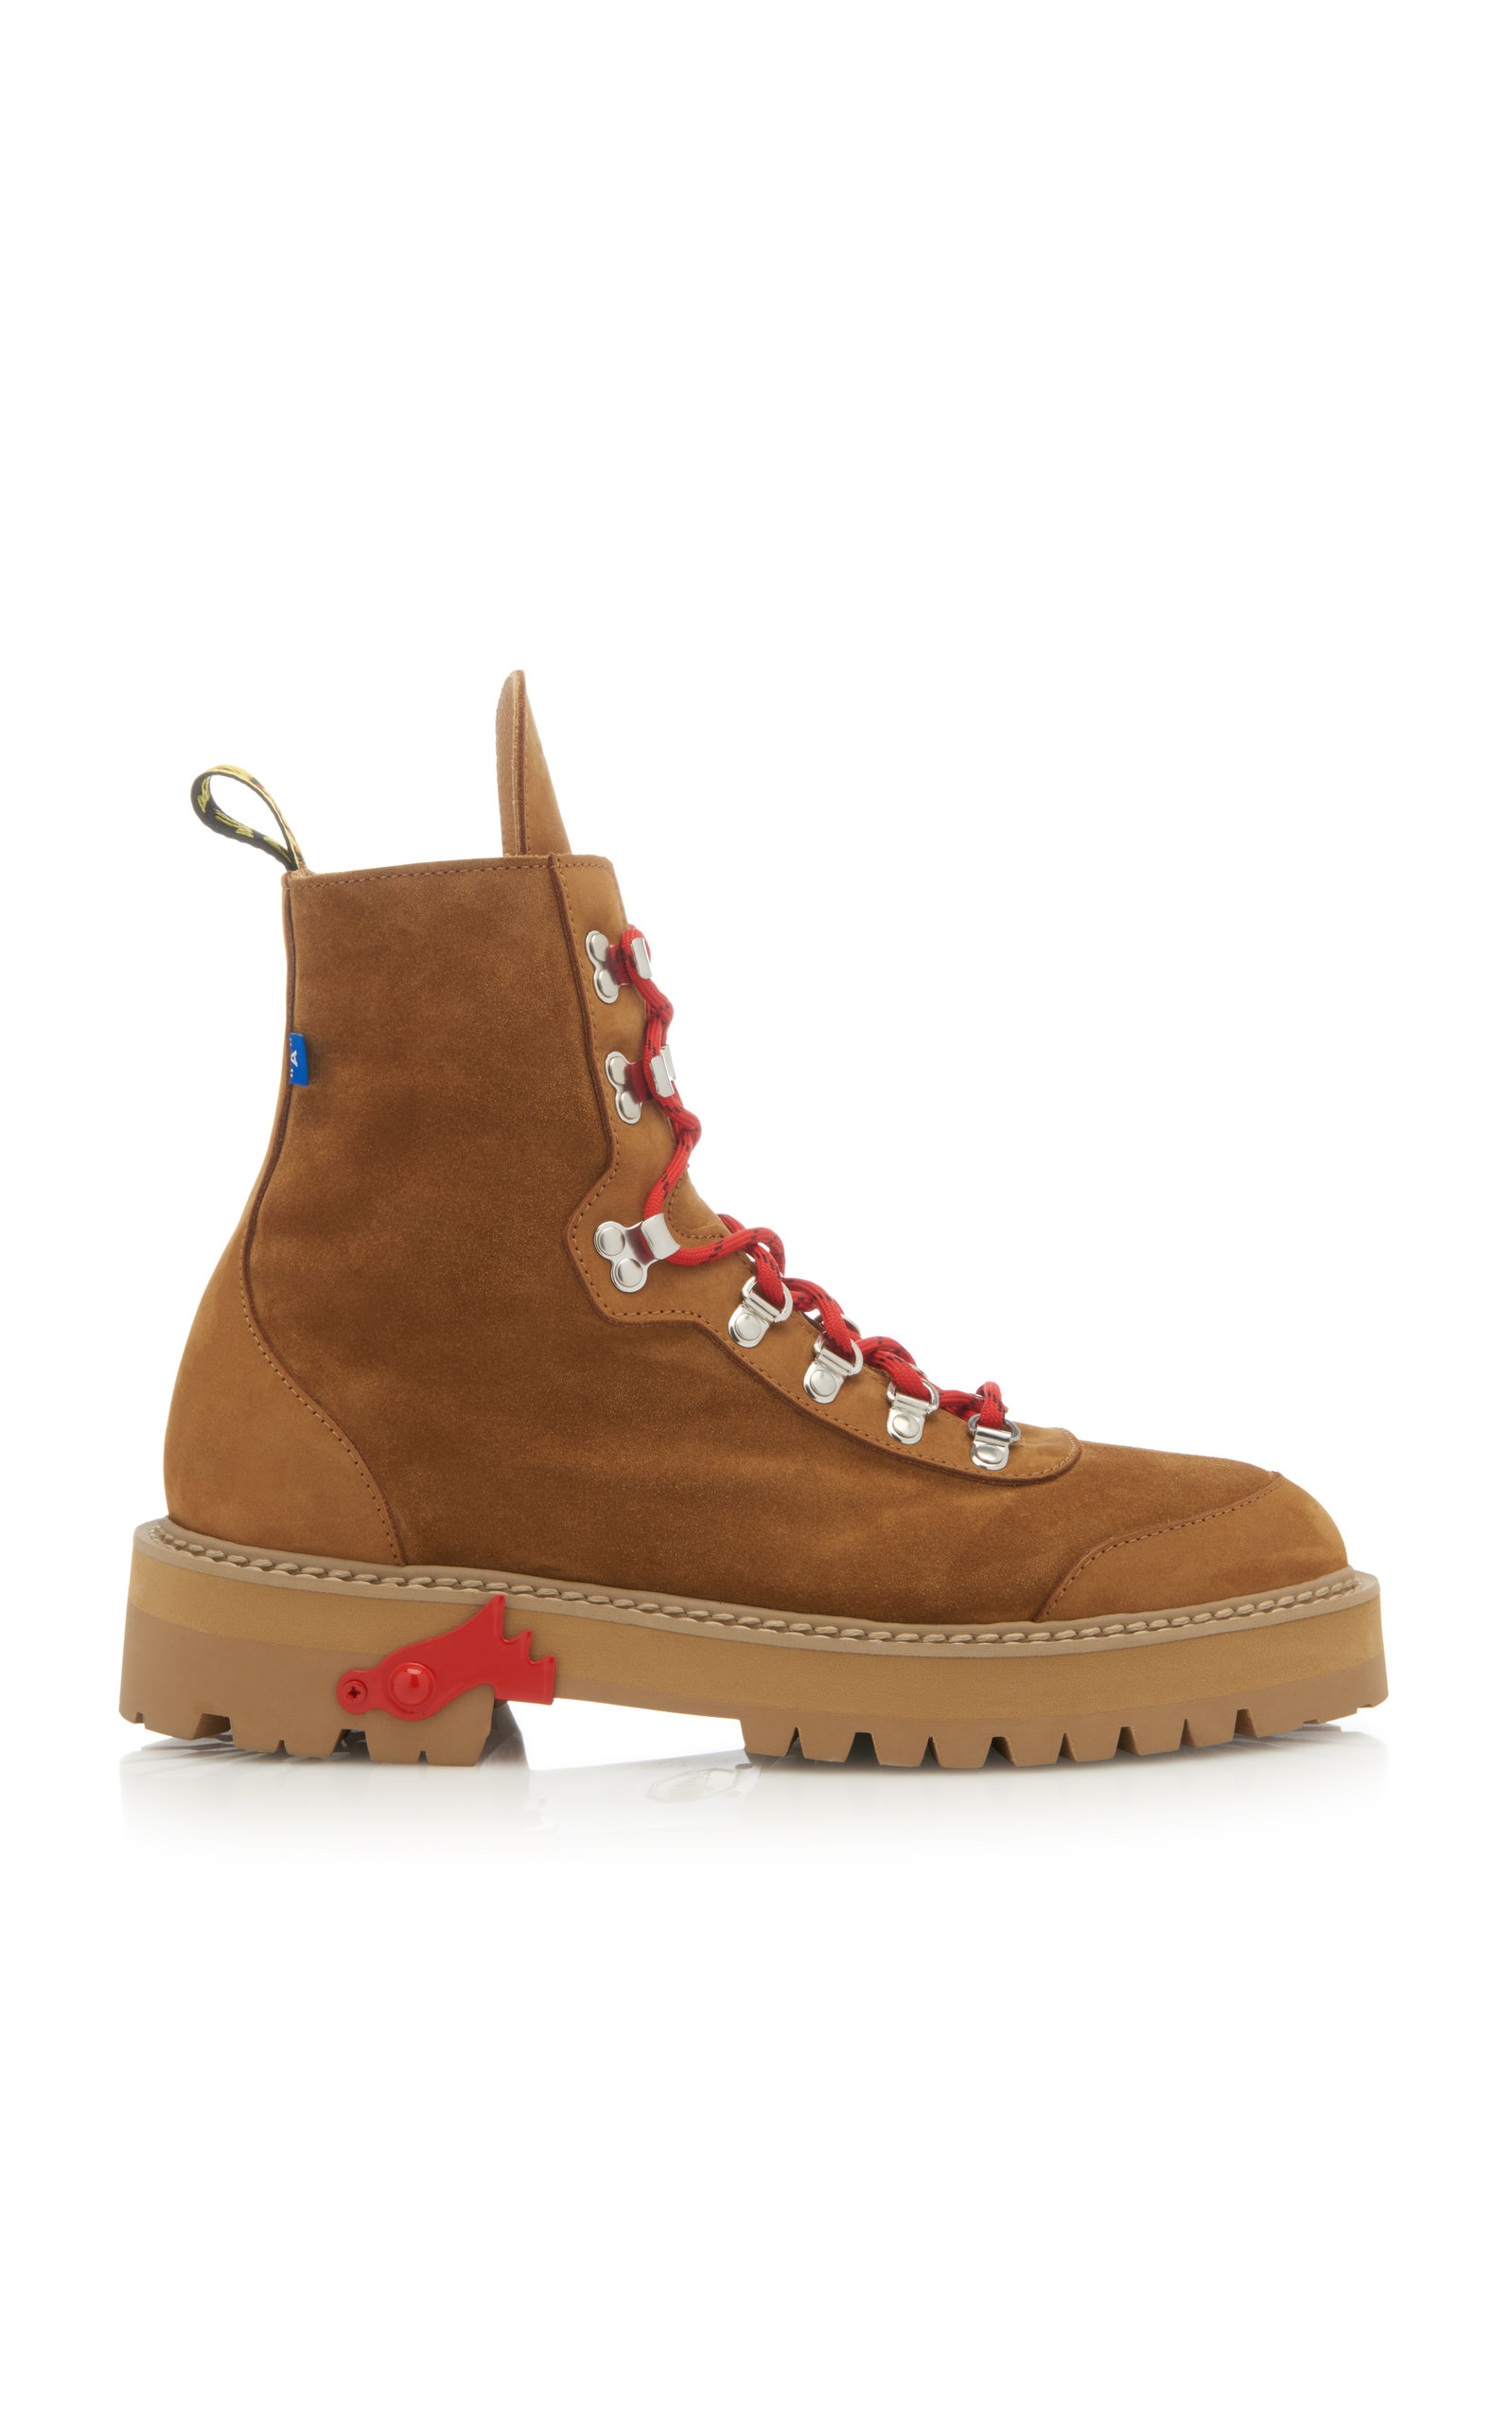 0f358a3b124 Suede Hiking Boots